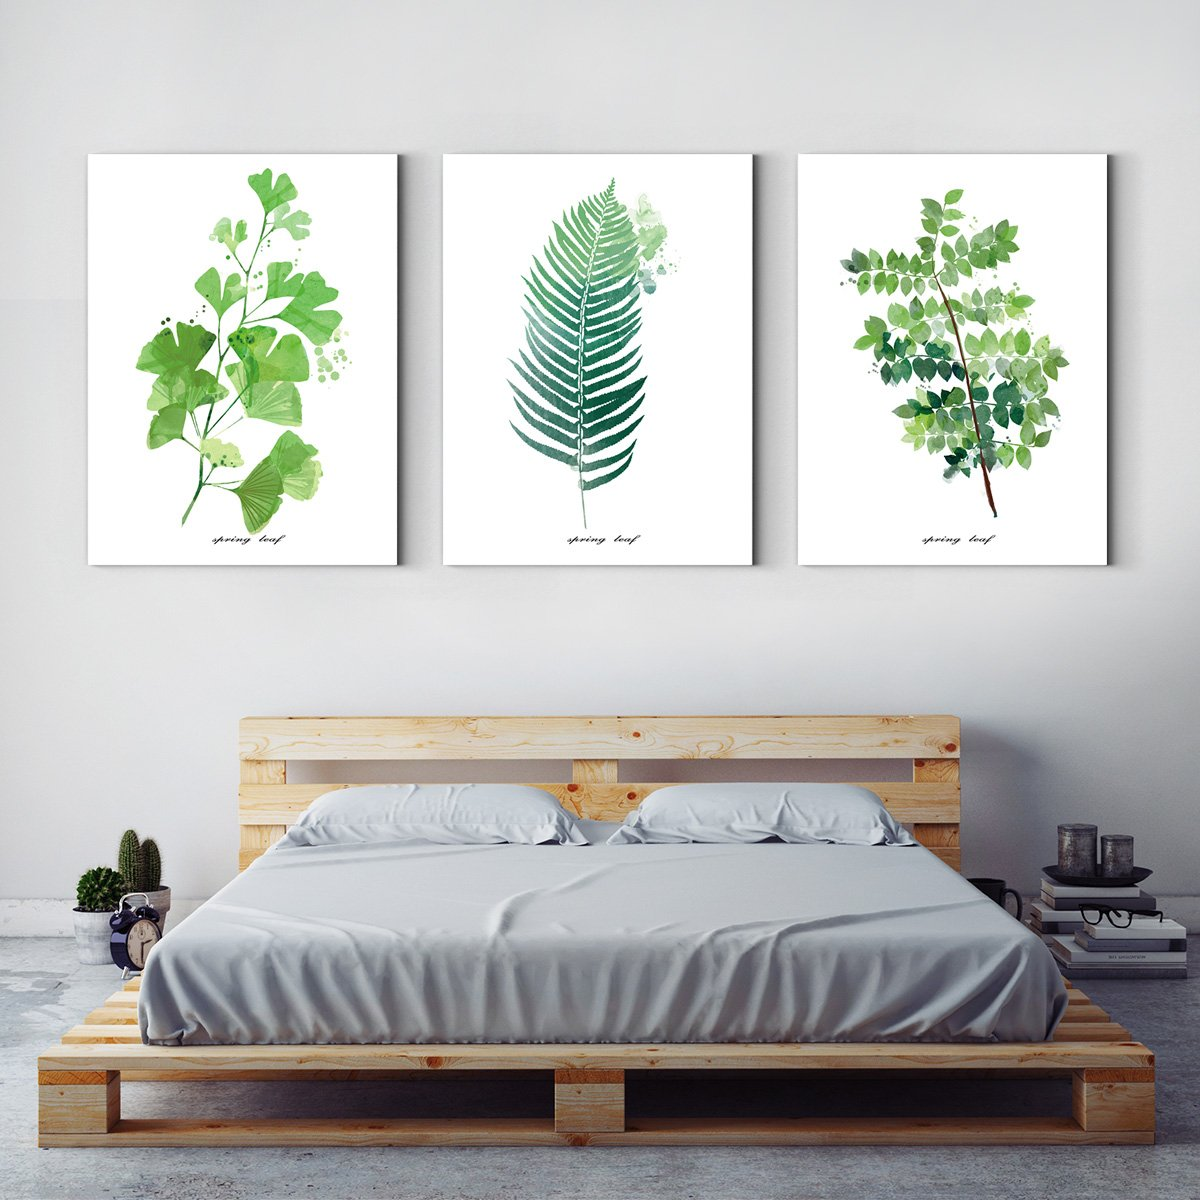 Green leaf plant decorates drawing room - Multi Panel Wall Art